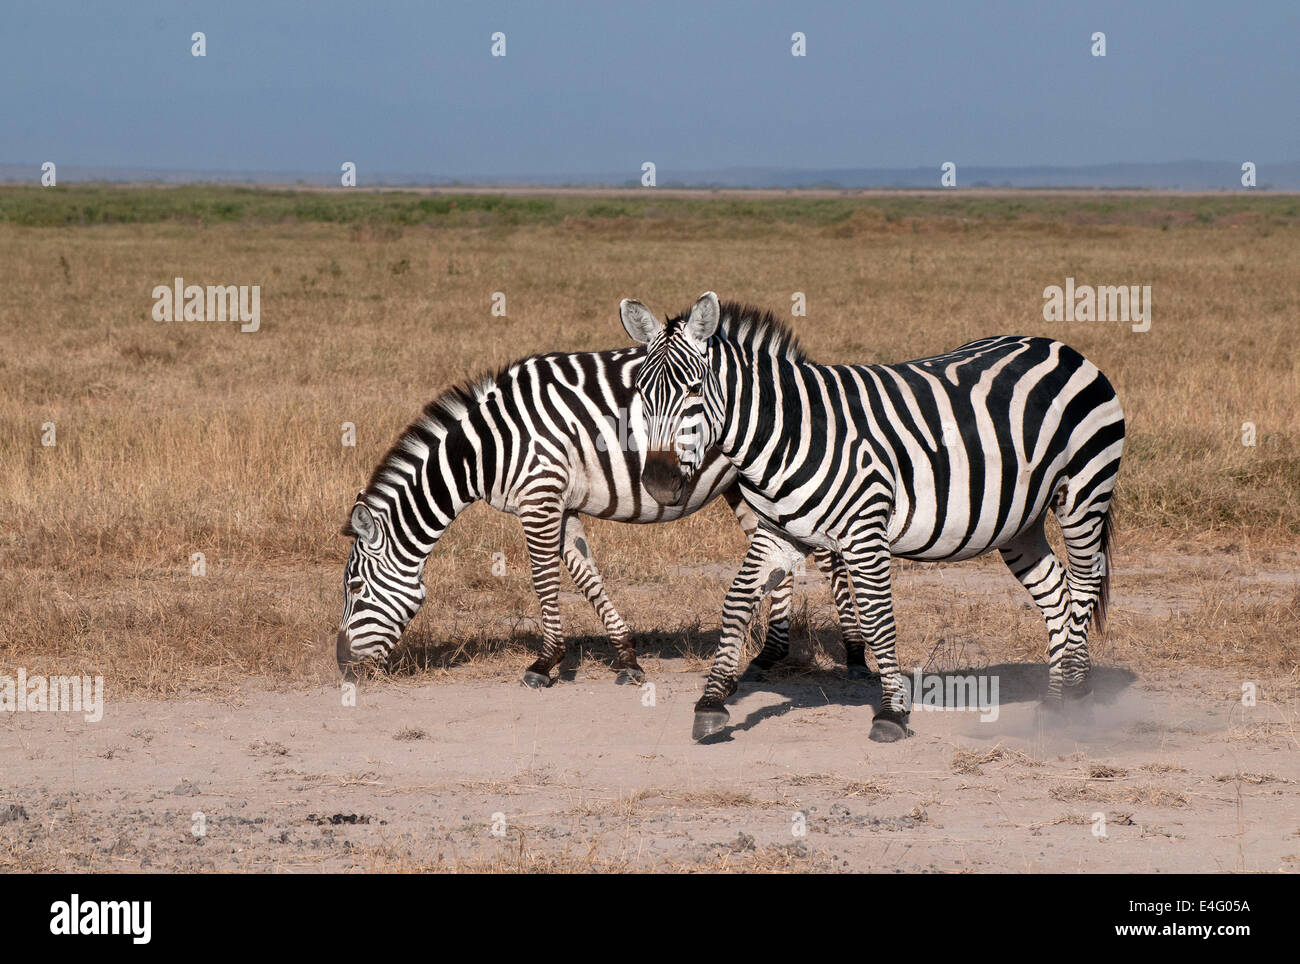 Two Common Zebras in Amboseli National Park Kenya East Africa  TWO COMMON ZEBRA ZEBRAS AMBOSELI KENYA - Stock Image